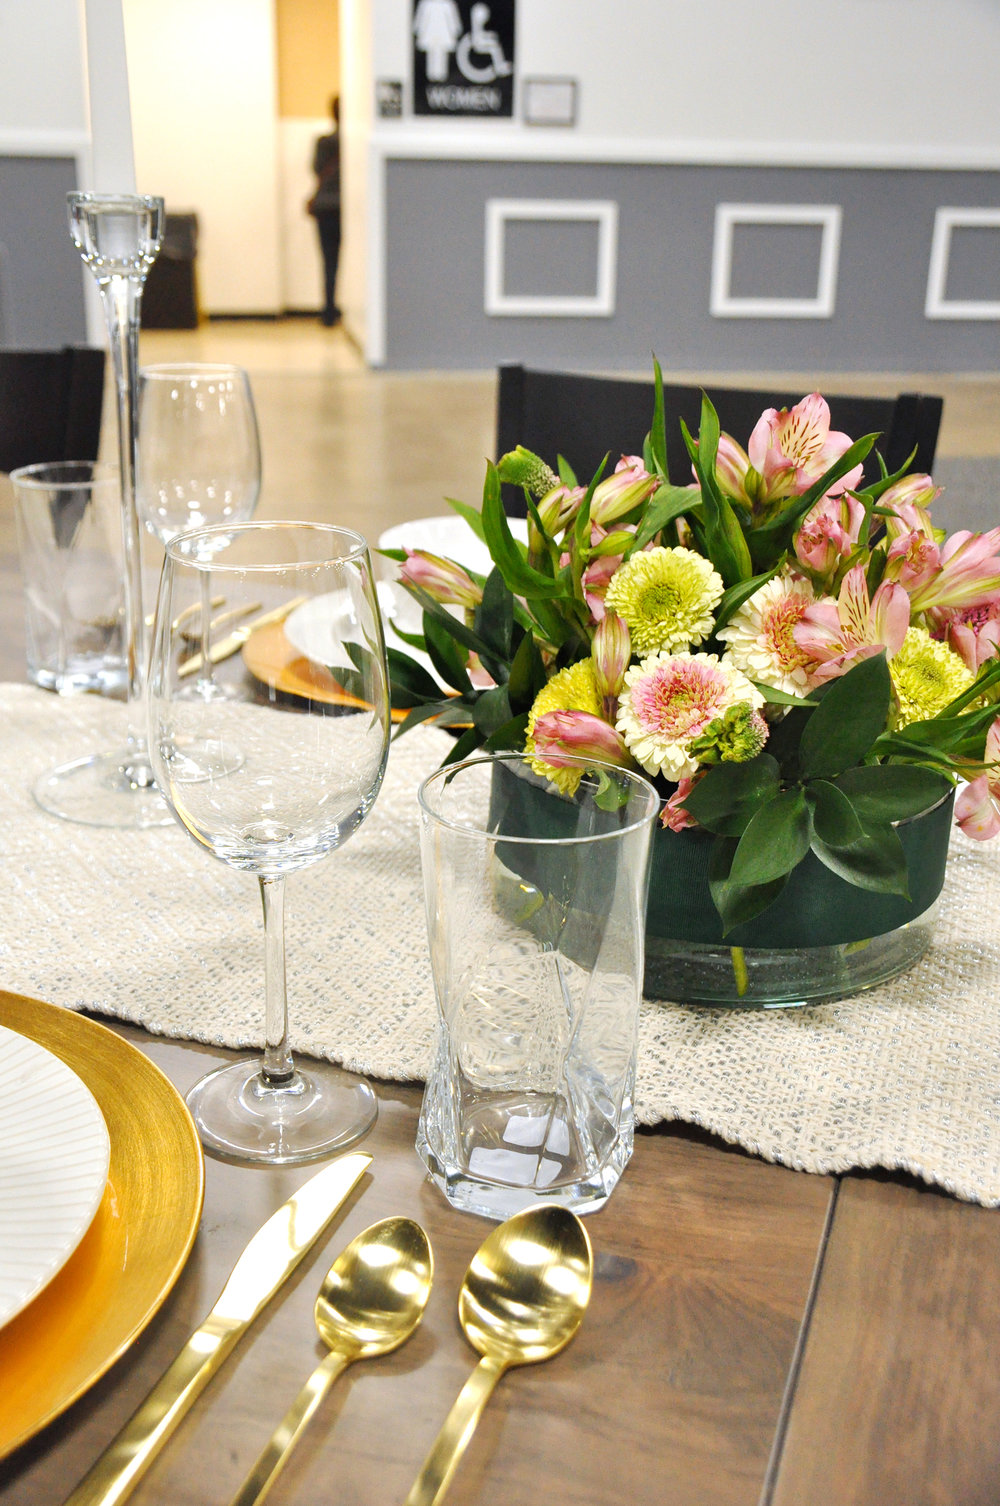 Home-Show-Feminine-Sophisticated-Elegant-Tablescape-Table-Setting-19.jpg